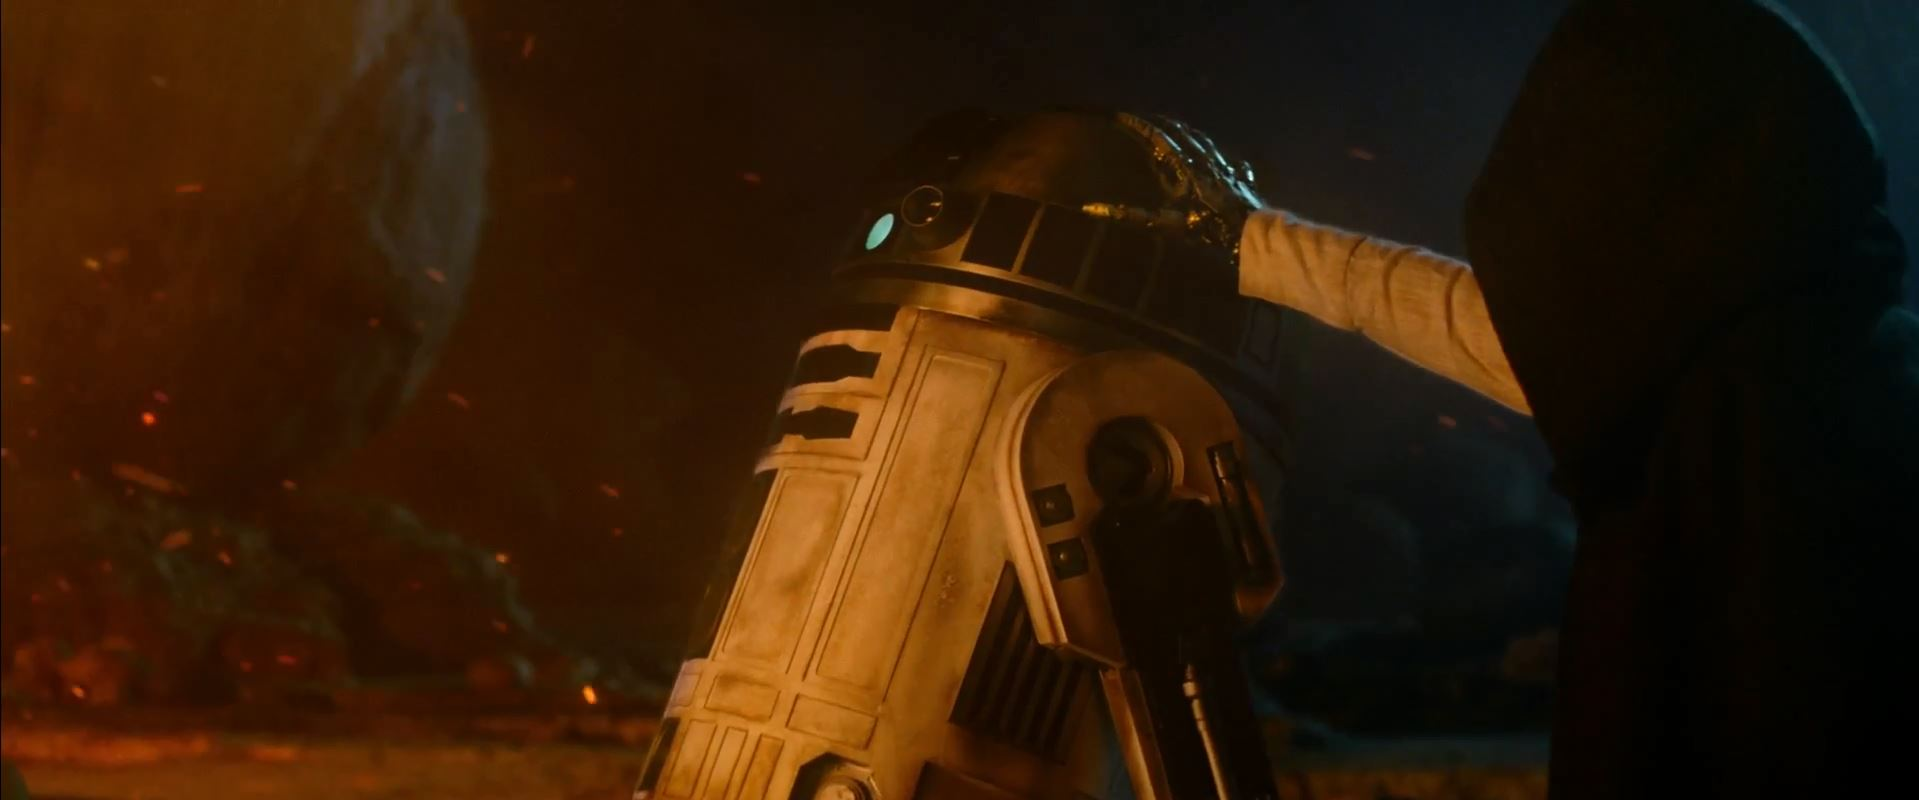 Luke Skywalker and R2D2. New Star Wars The Force Awakens Trailer Released!